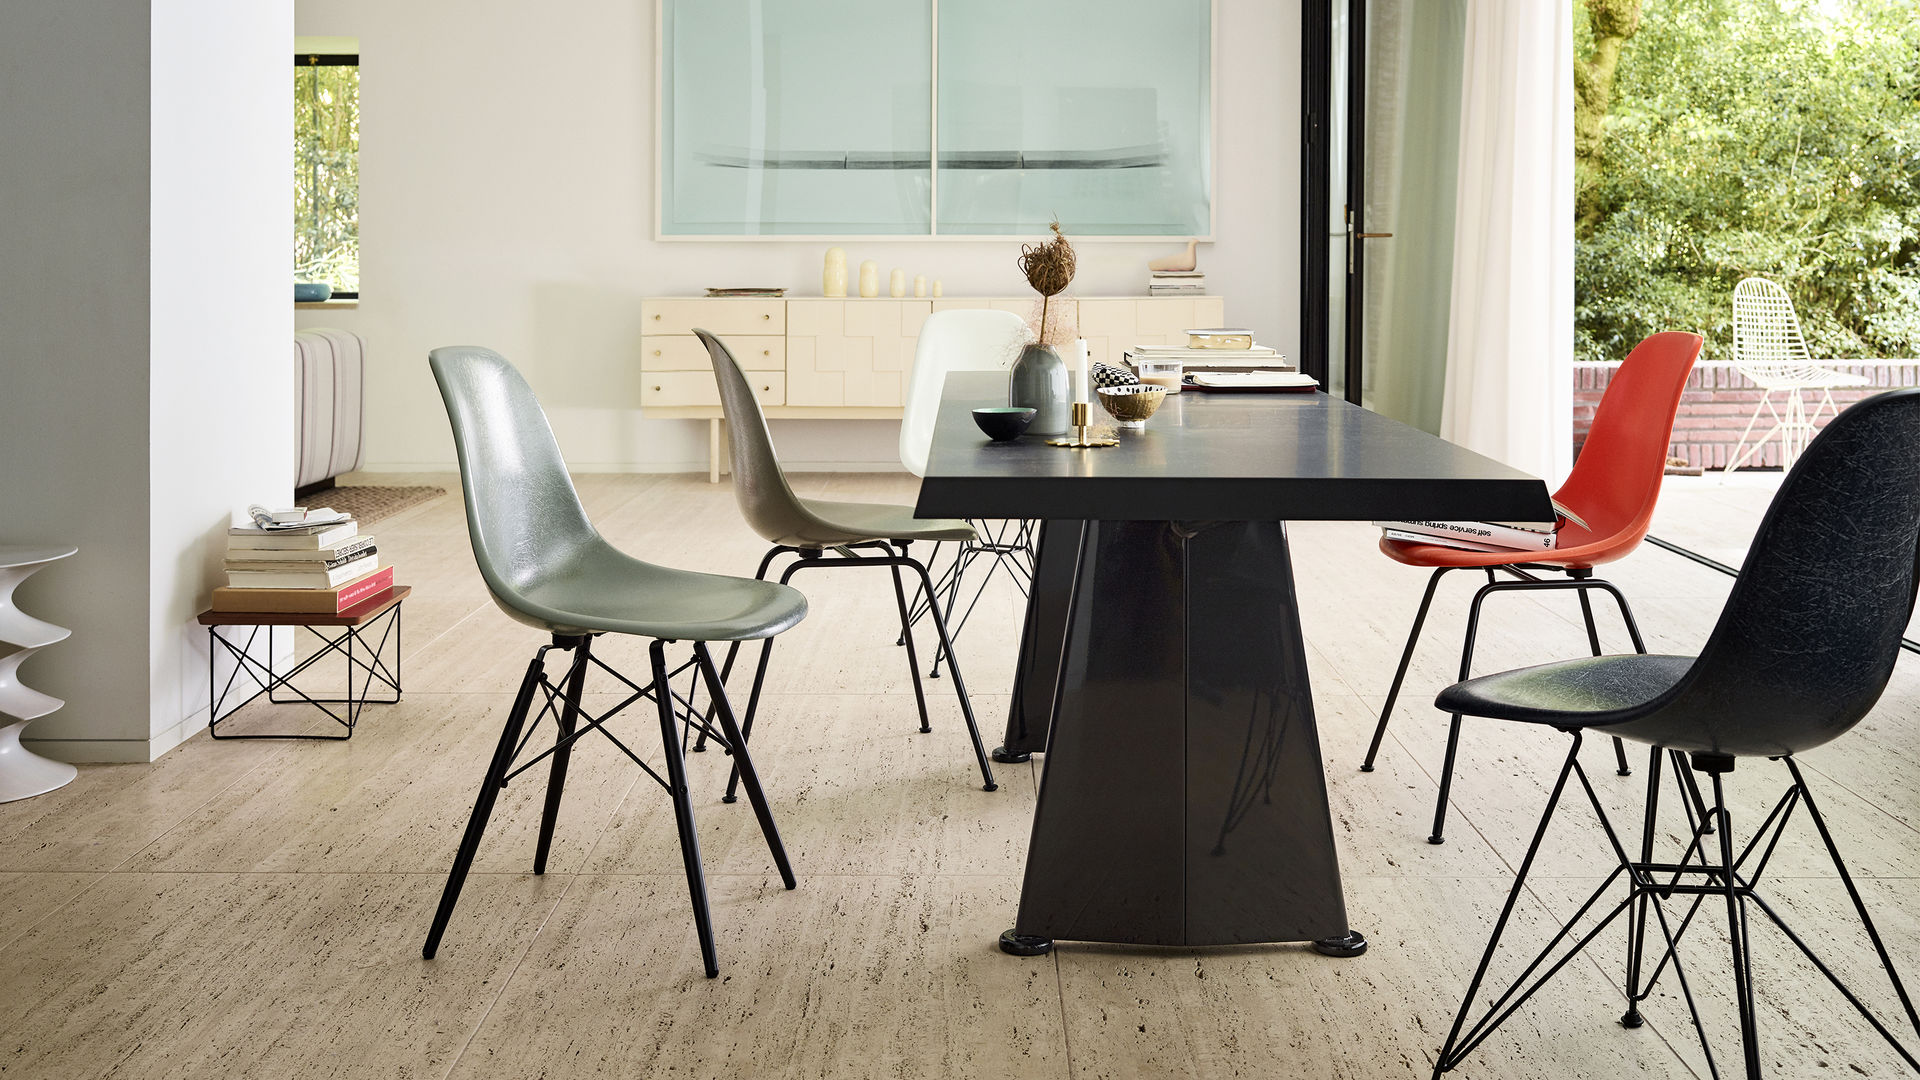 Eames Fiberglass Chairs Trapèze Wire Chair Occasional Table LTR V